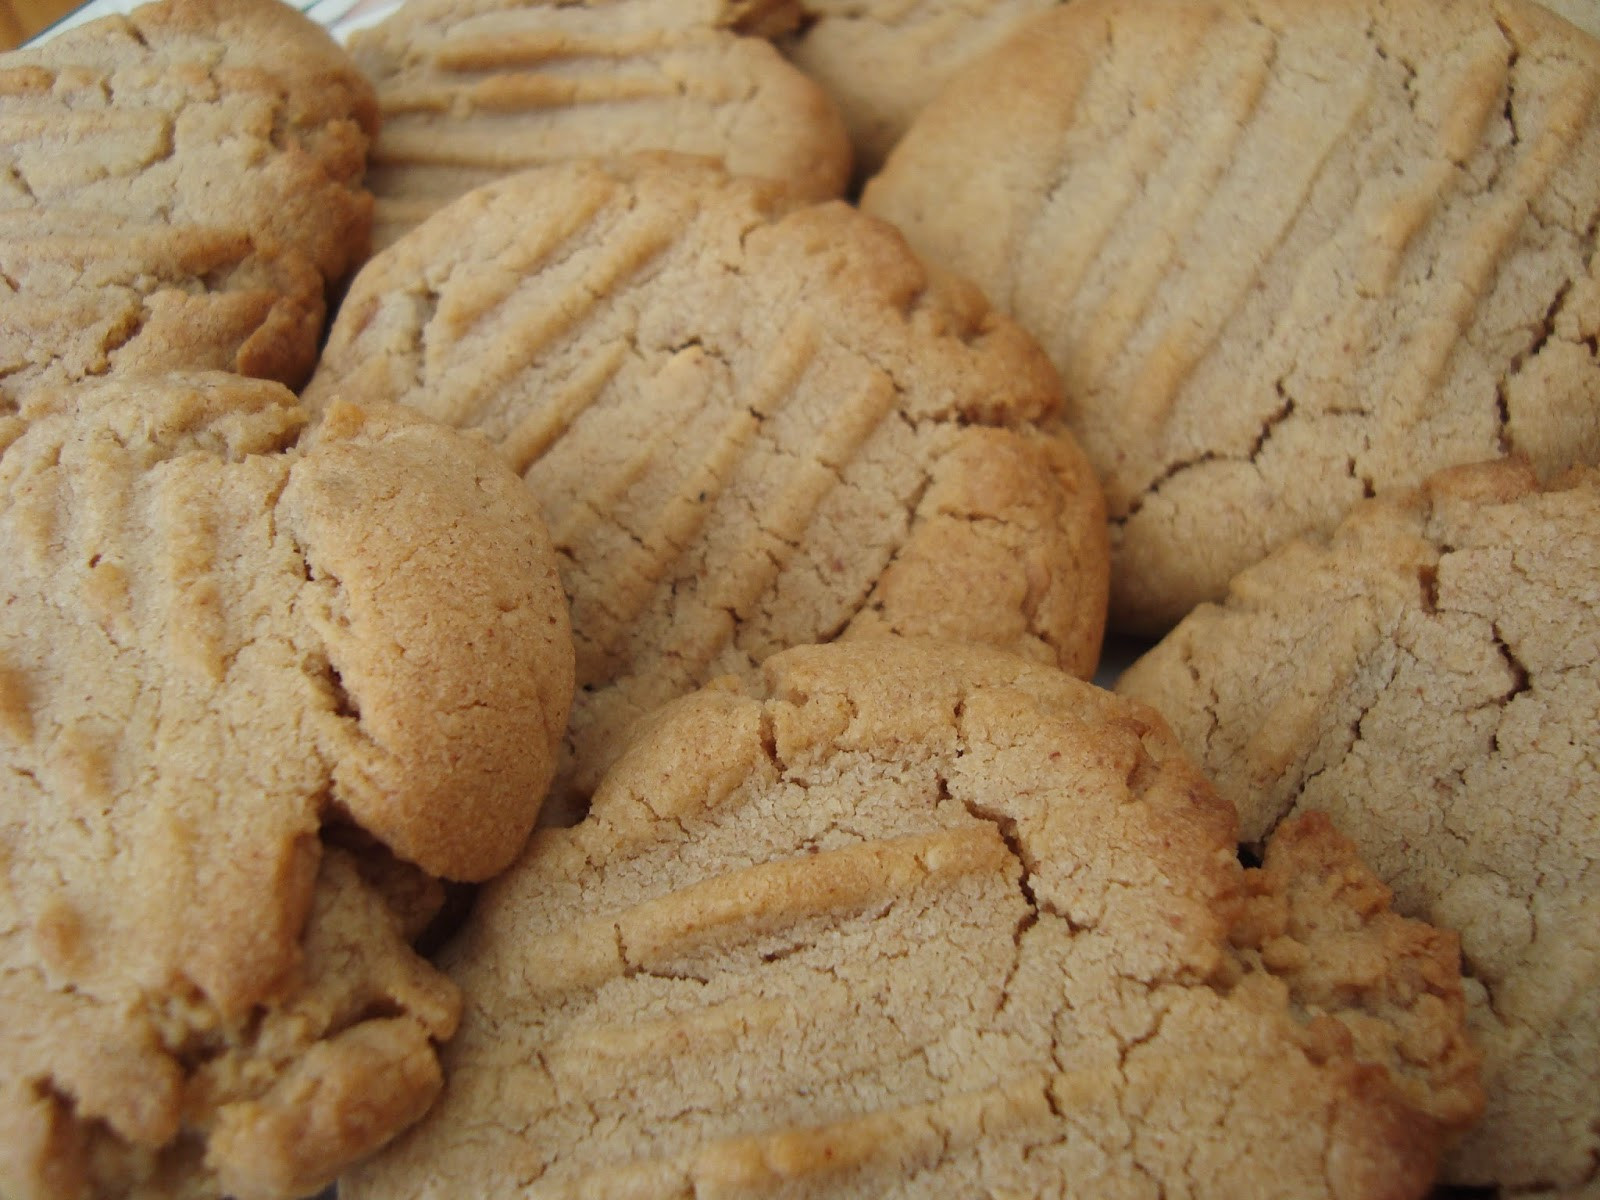 Soft Chewy Peanut Butter Cookies  Recipes Soft and Chewy Peanut Butter Cookies